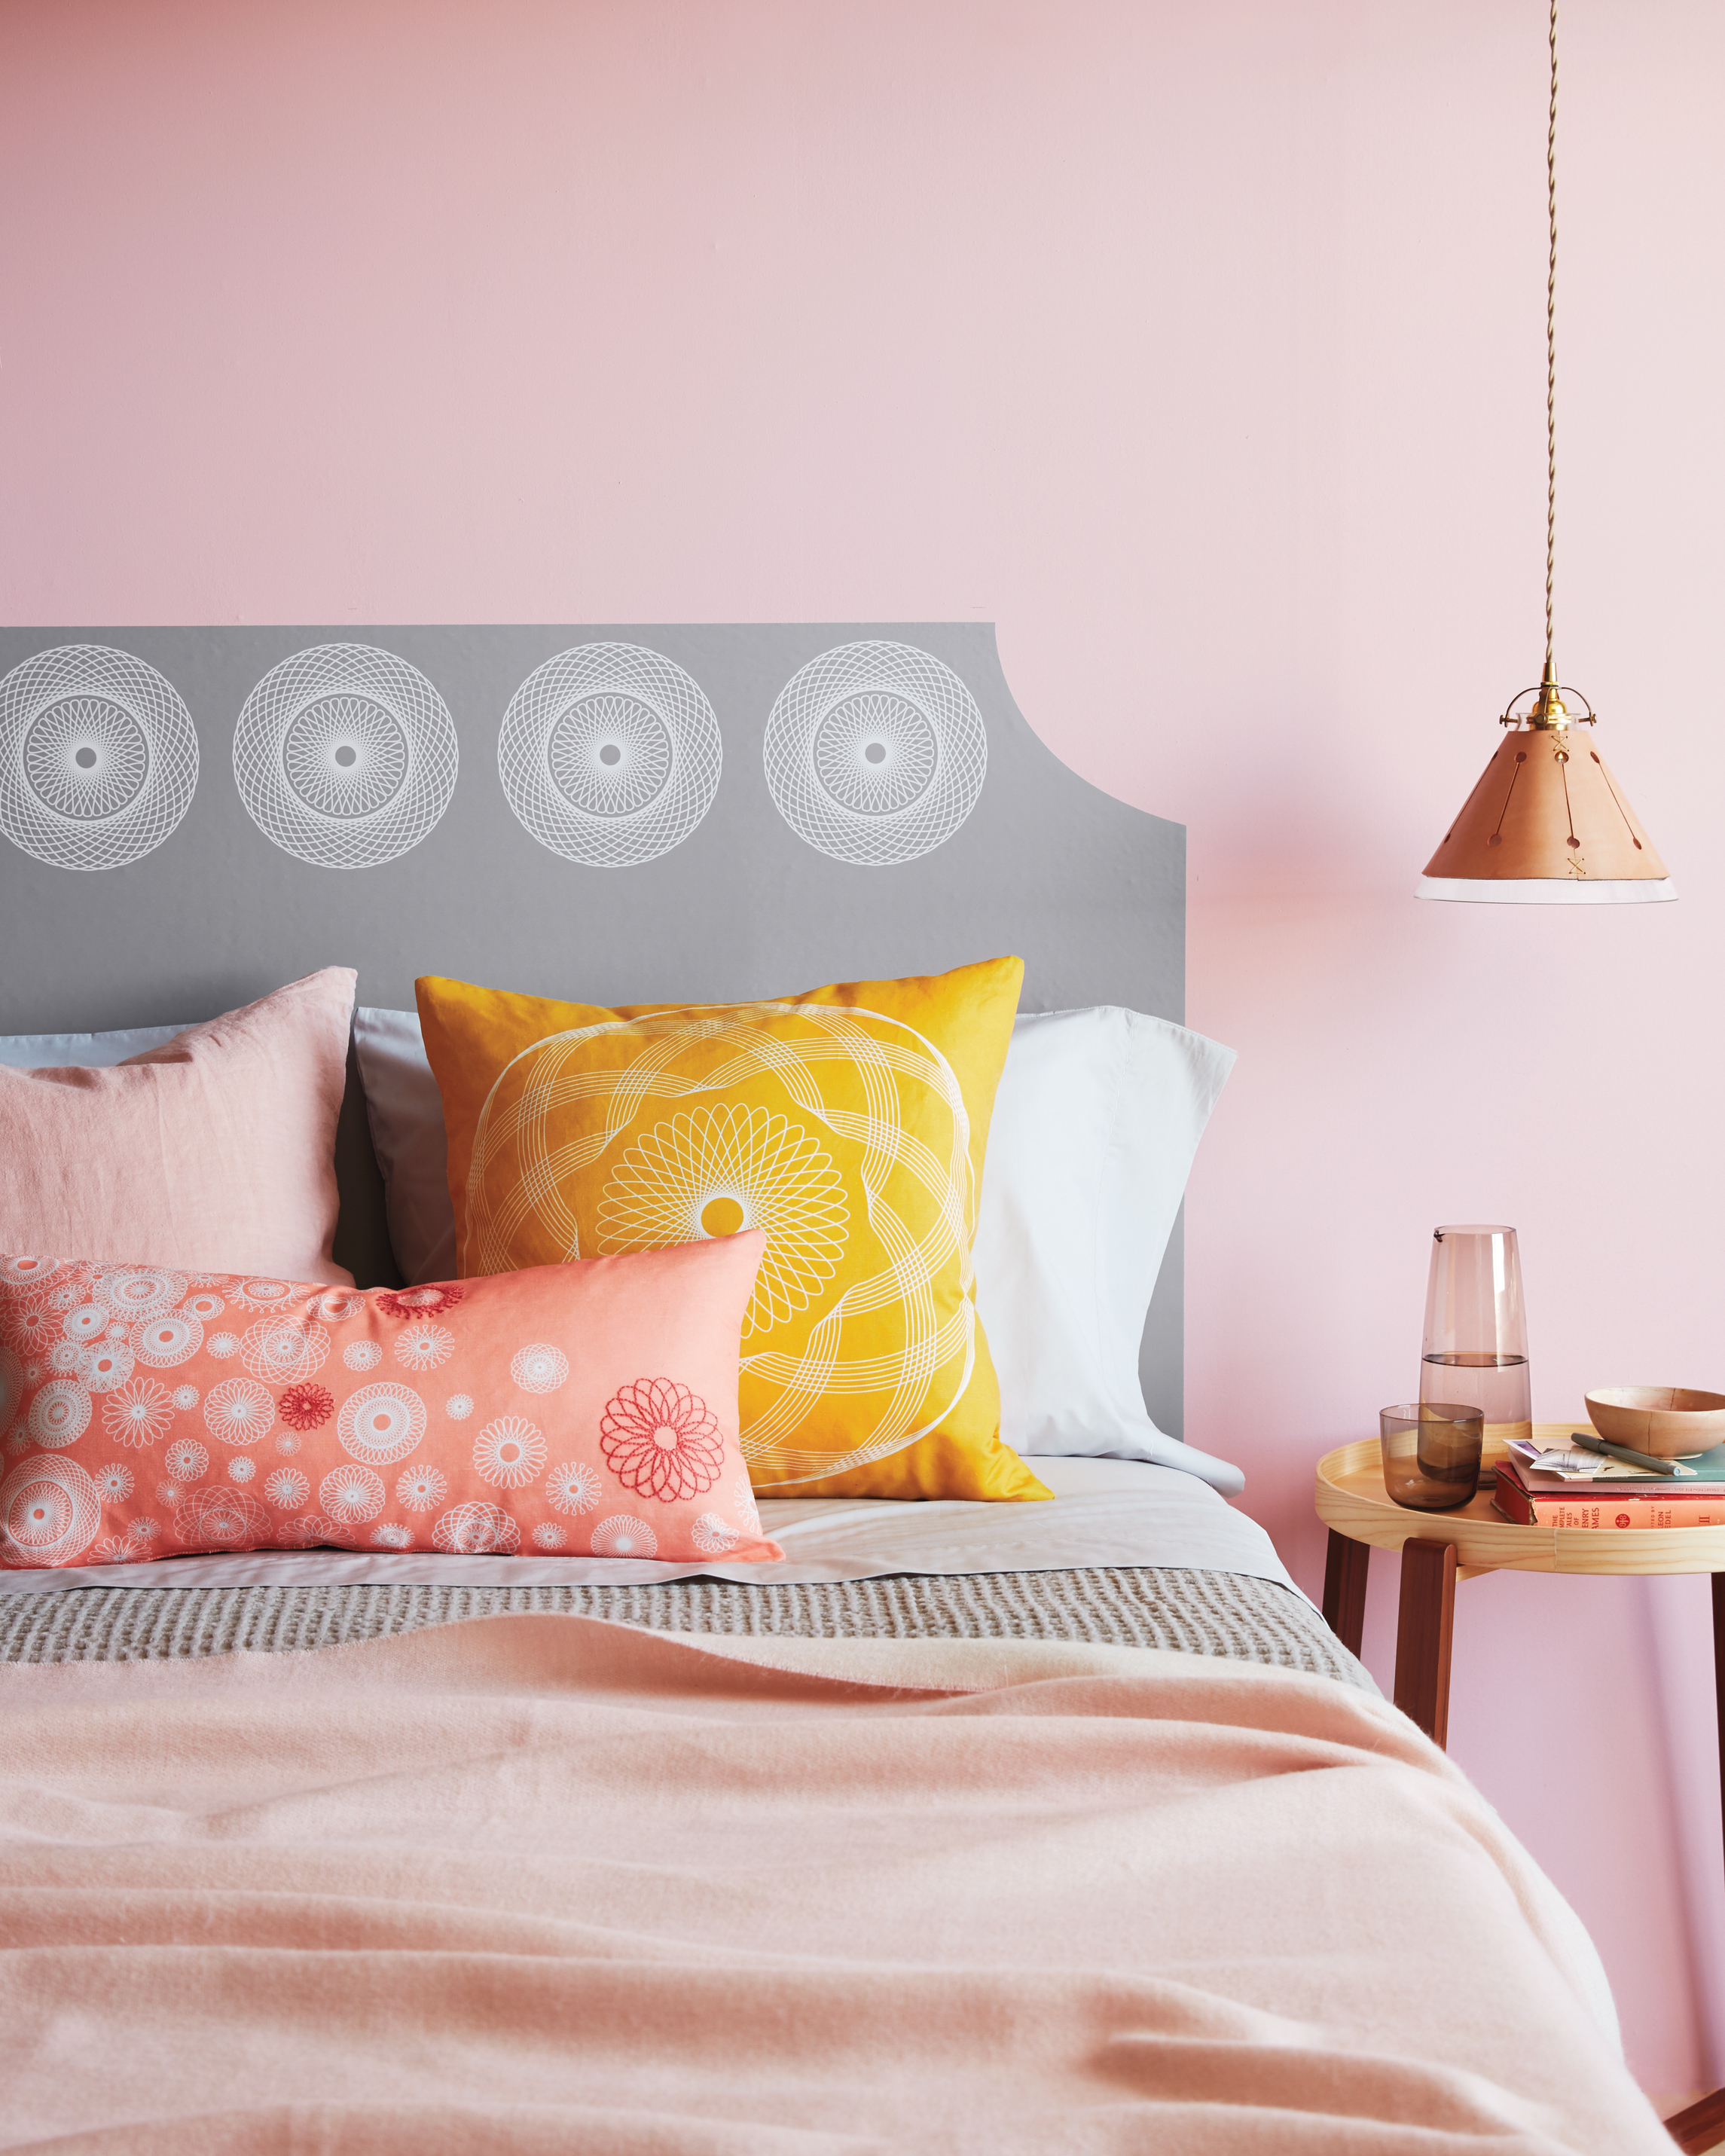 spirograph-decorated headboard and pillows